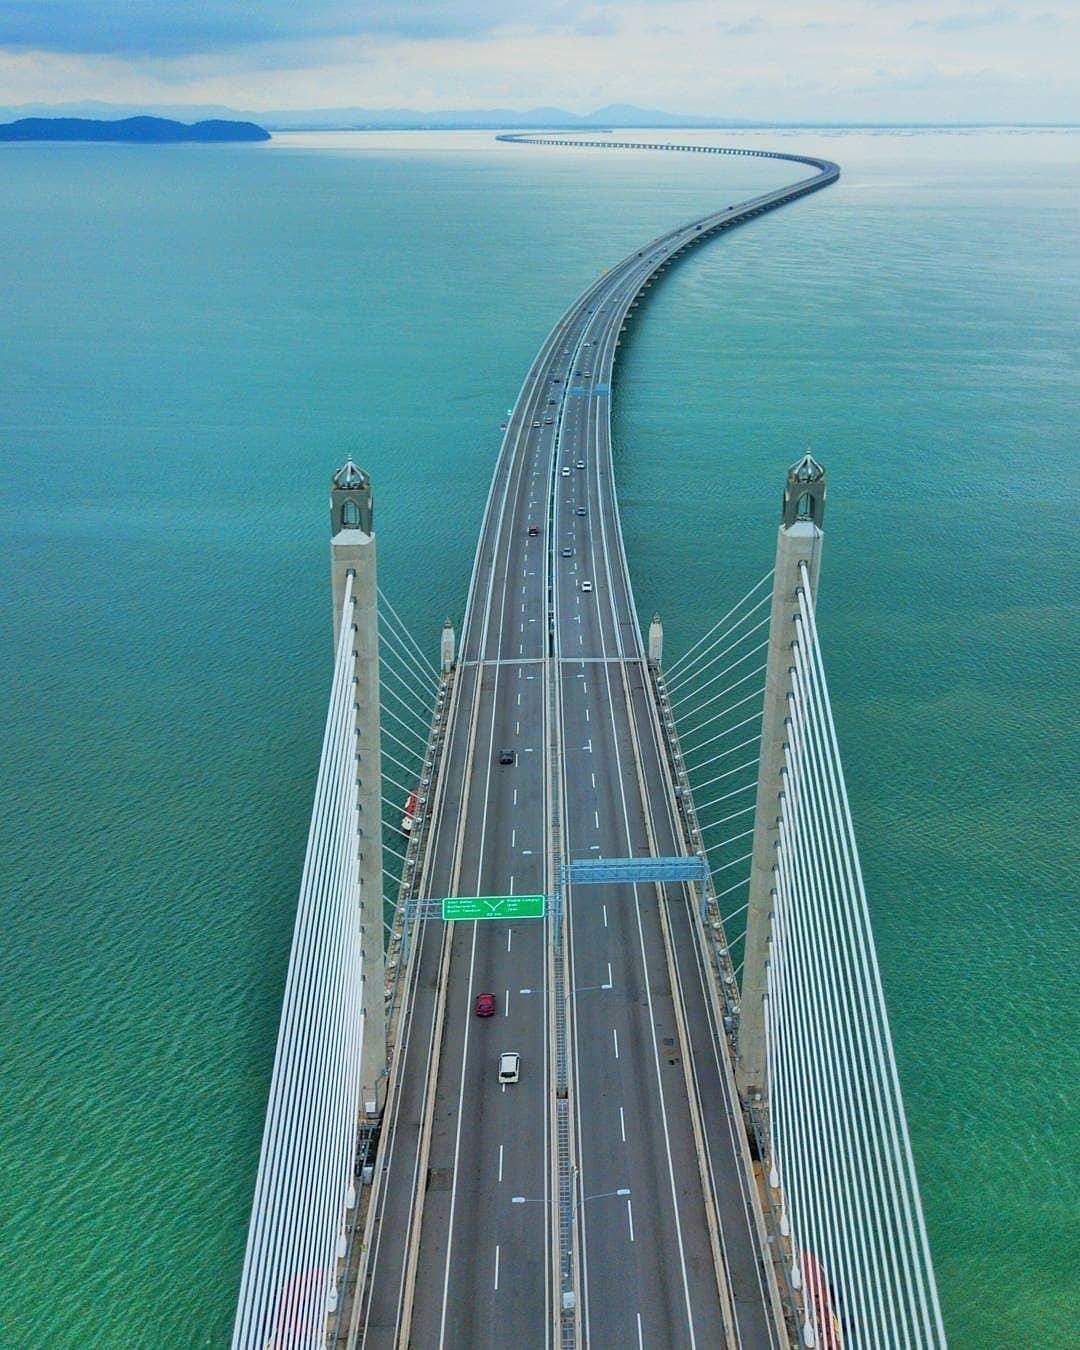 Penang Bridge Bird's Eye View by Seasia